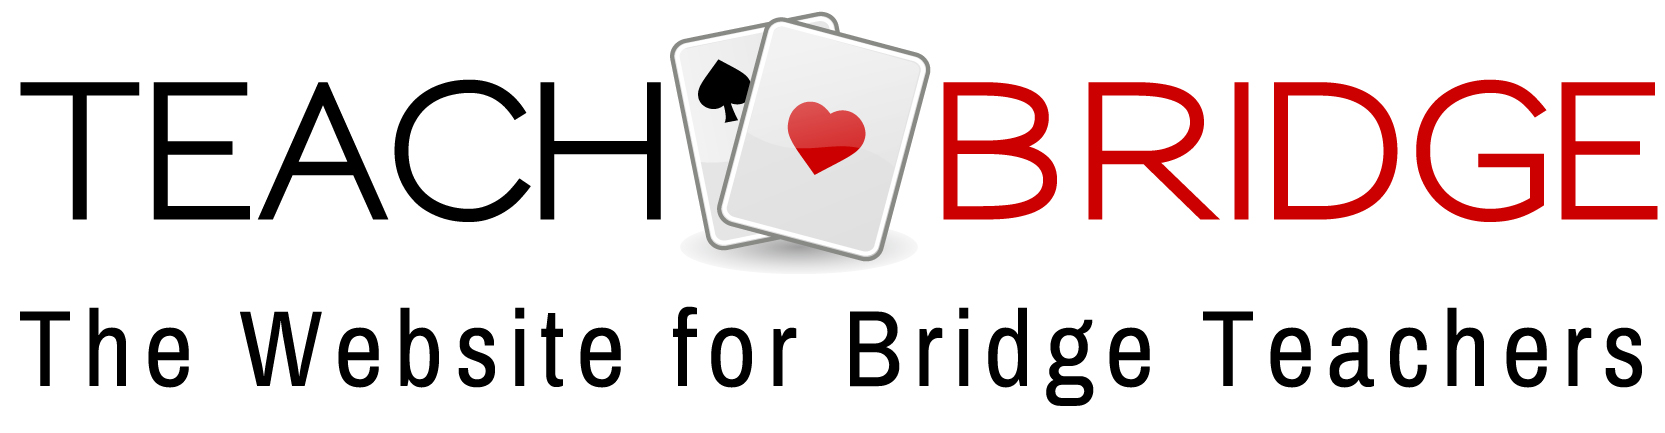 TeachBridge.com